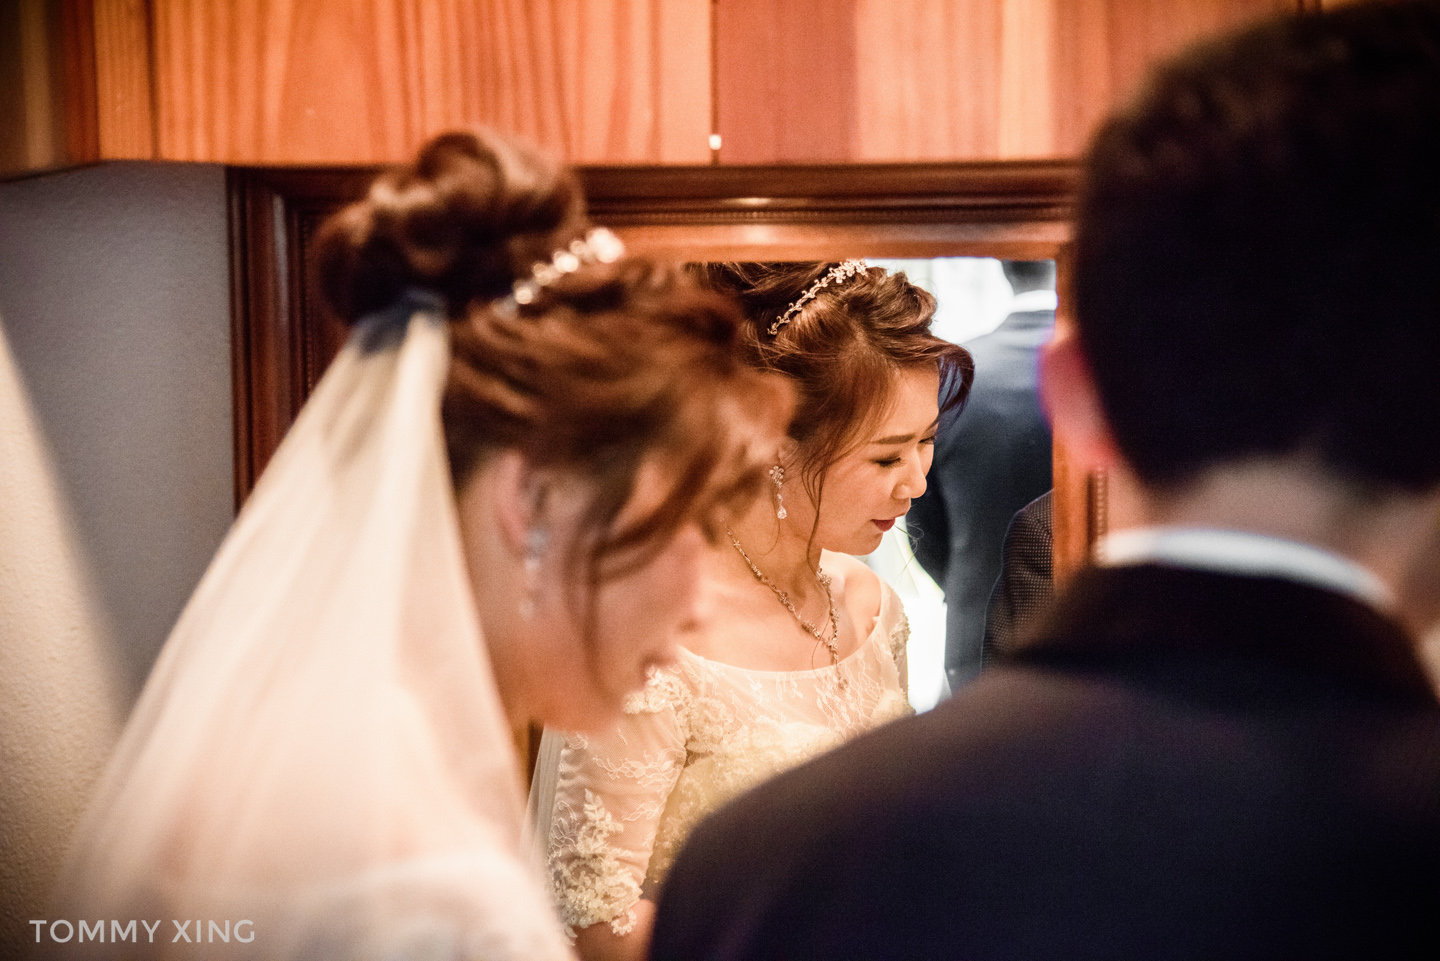 Los Angeles Wedding Photographer 洛杉矶婚礼婚纱摄影师 Tommy Xing-88.JPG